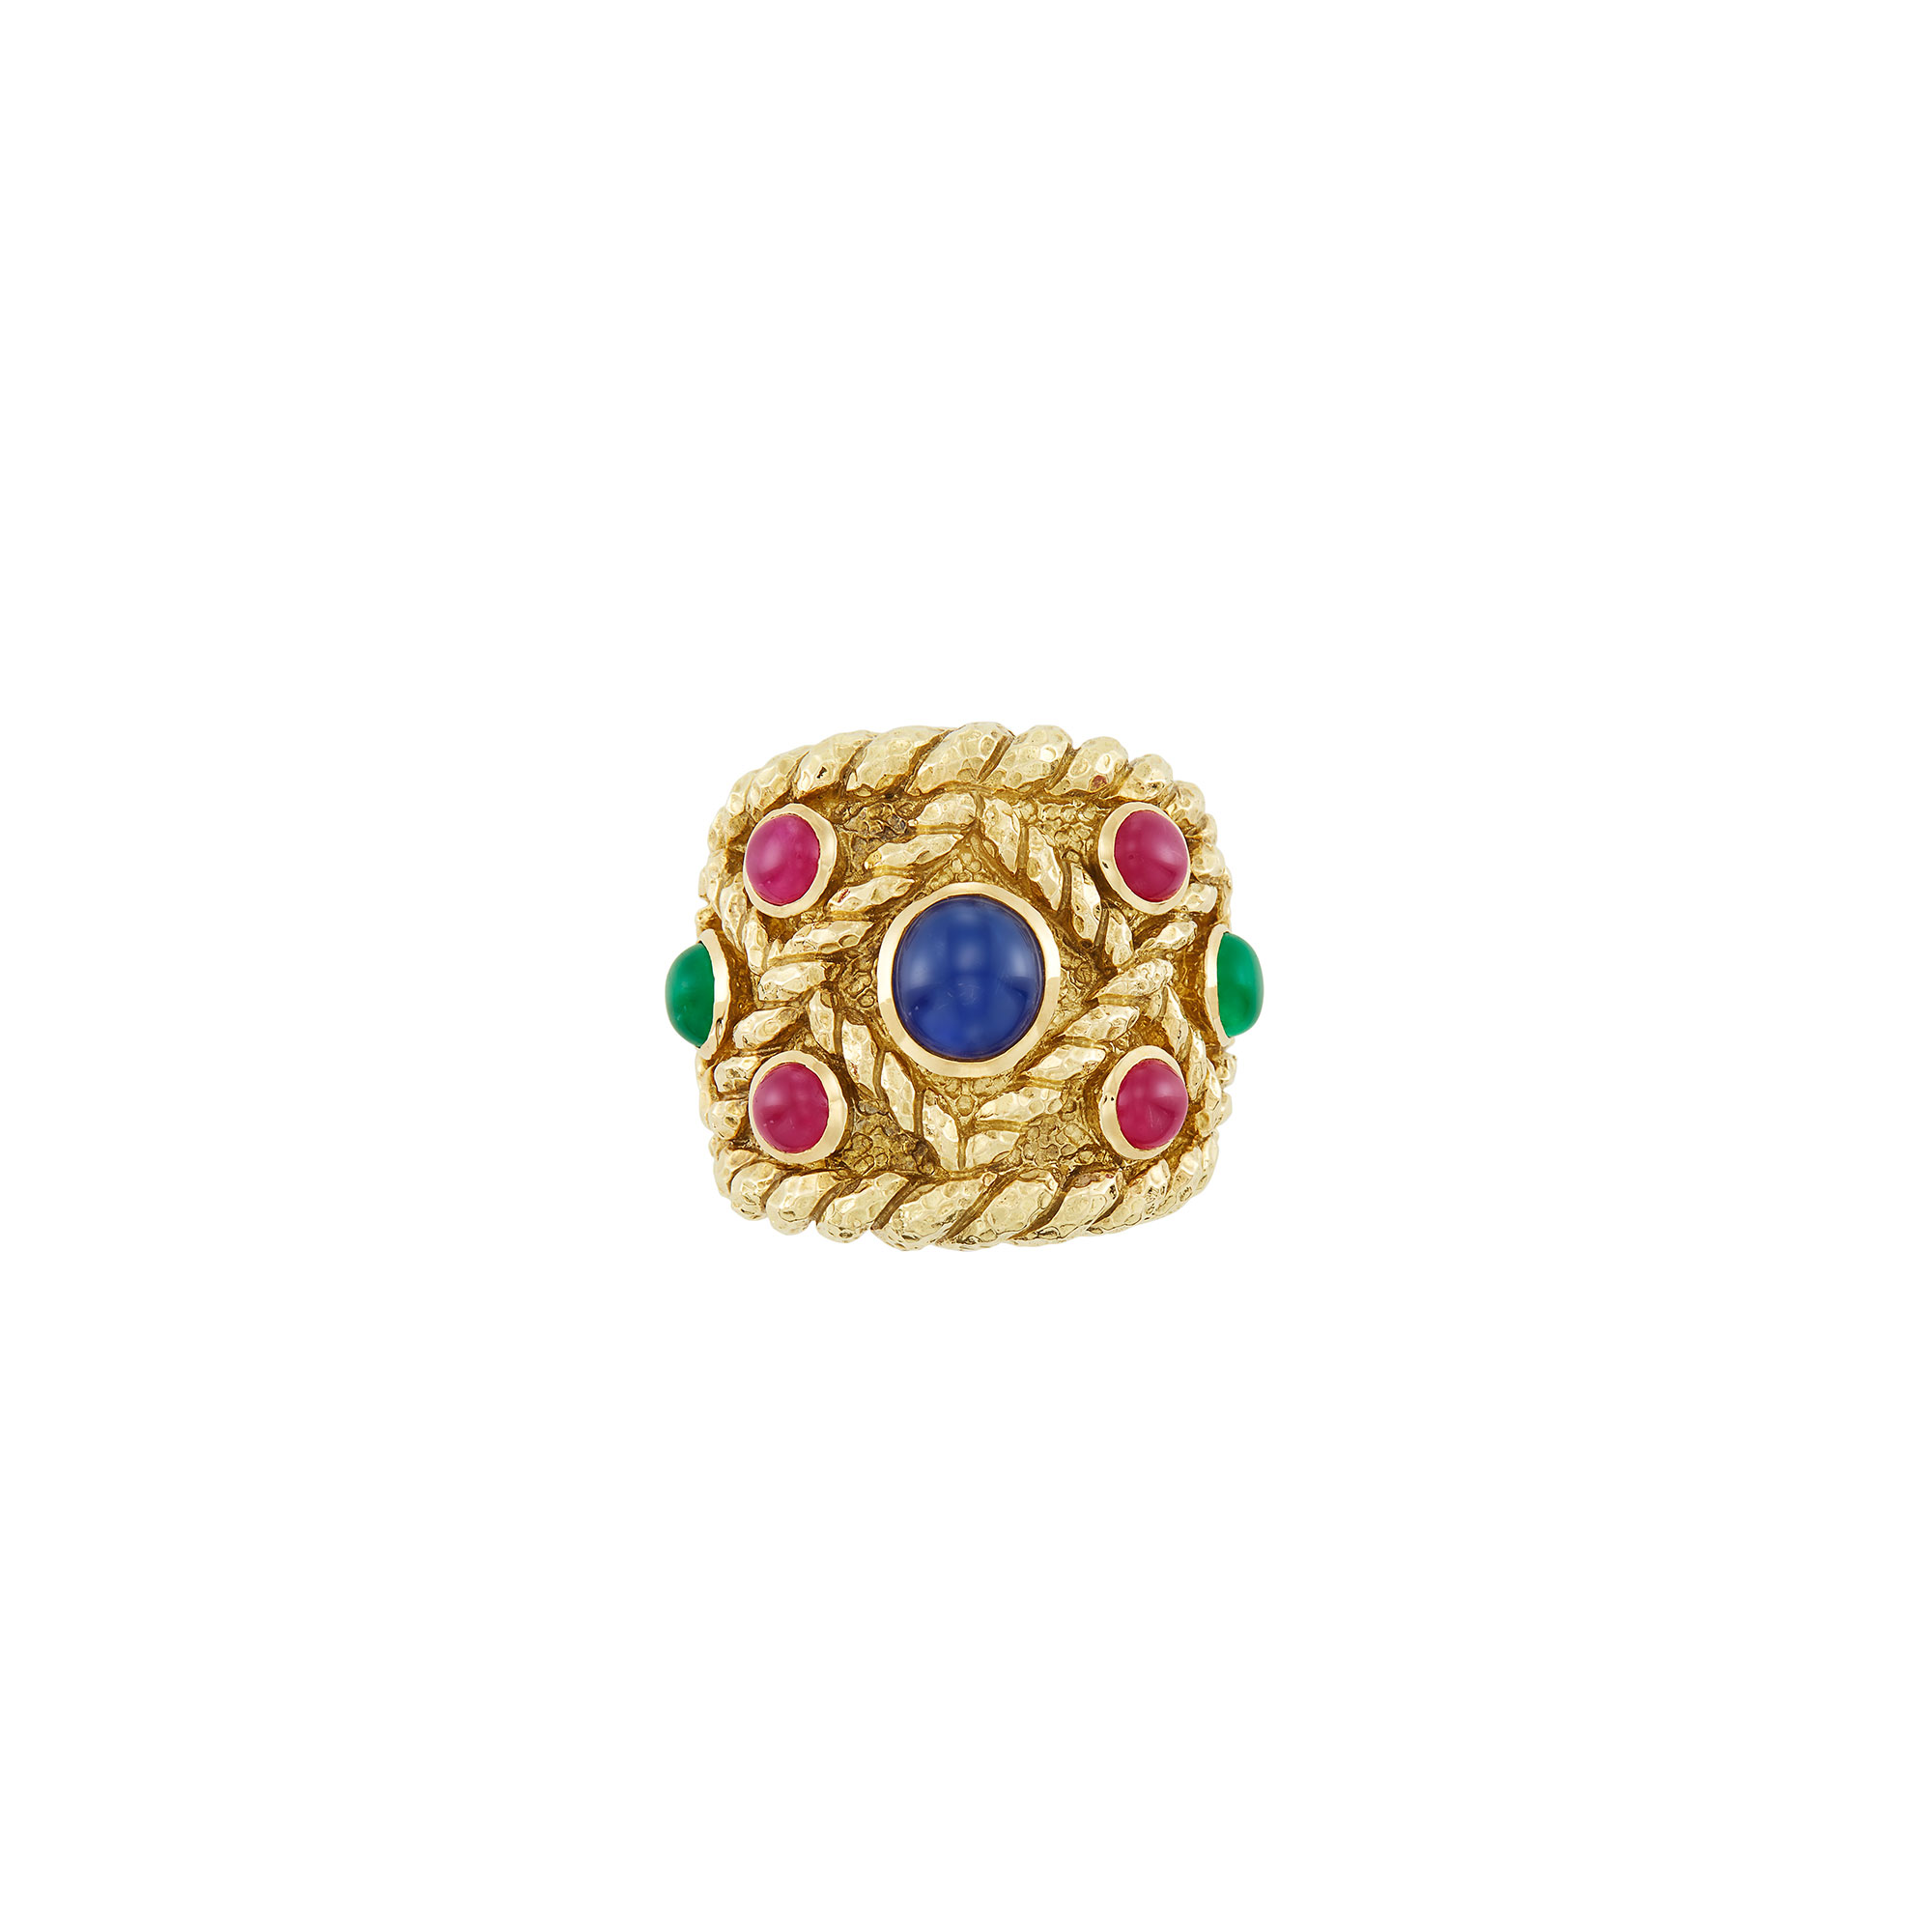 Lot image - Wide Gold and Cabochon Gem-Set Ring, David Webb